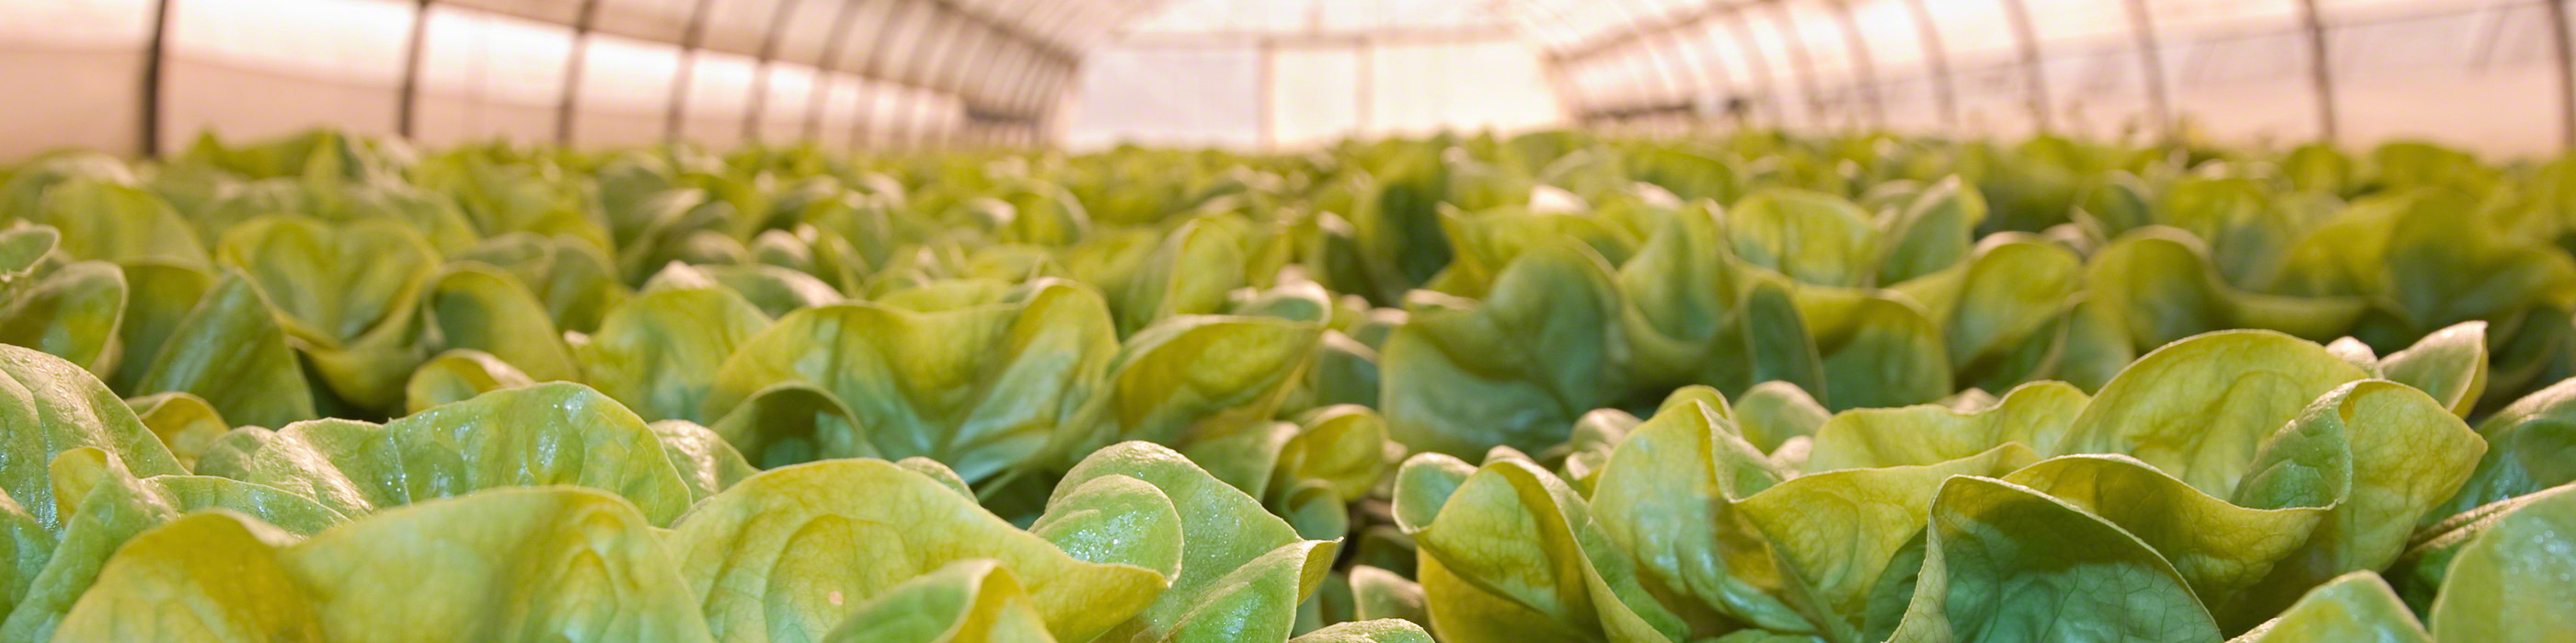 Lettuces in greenhouse